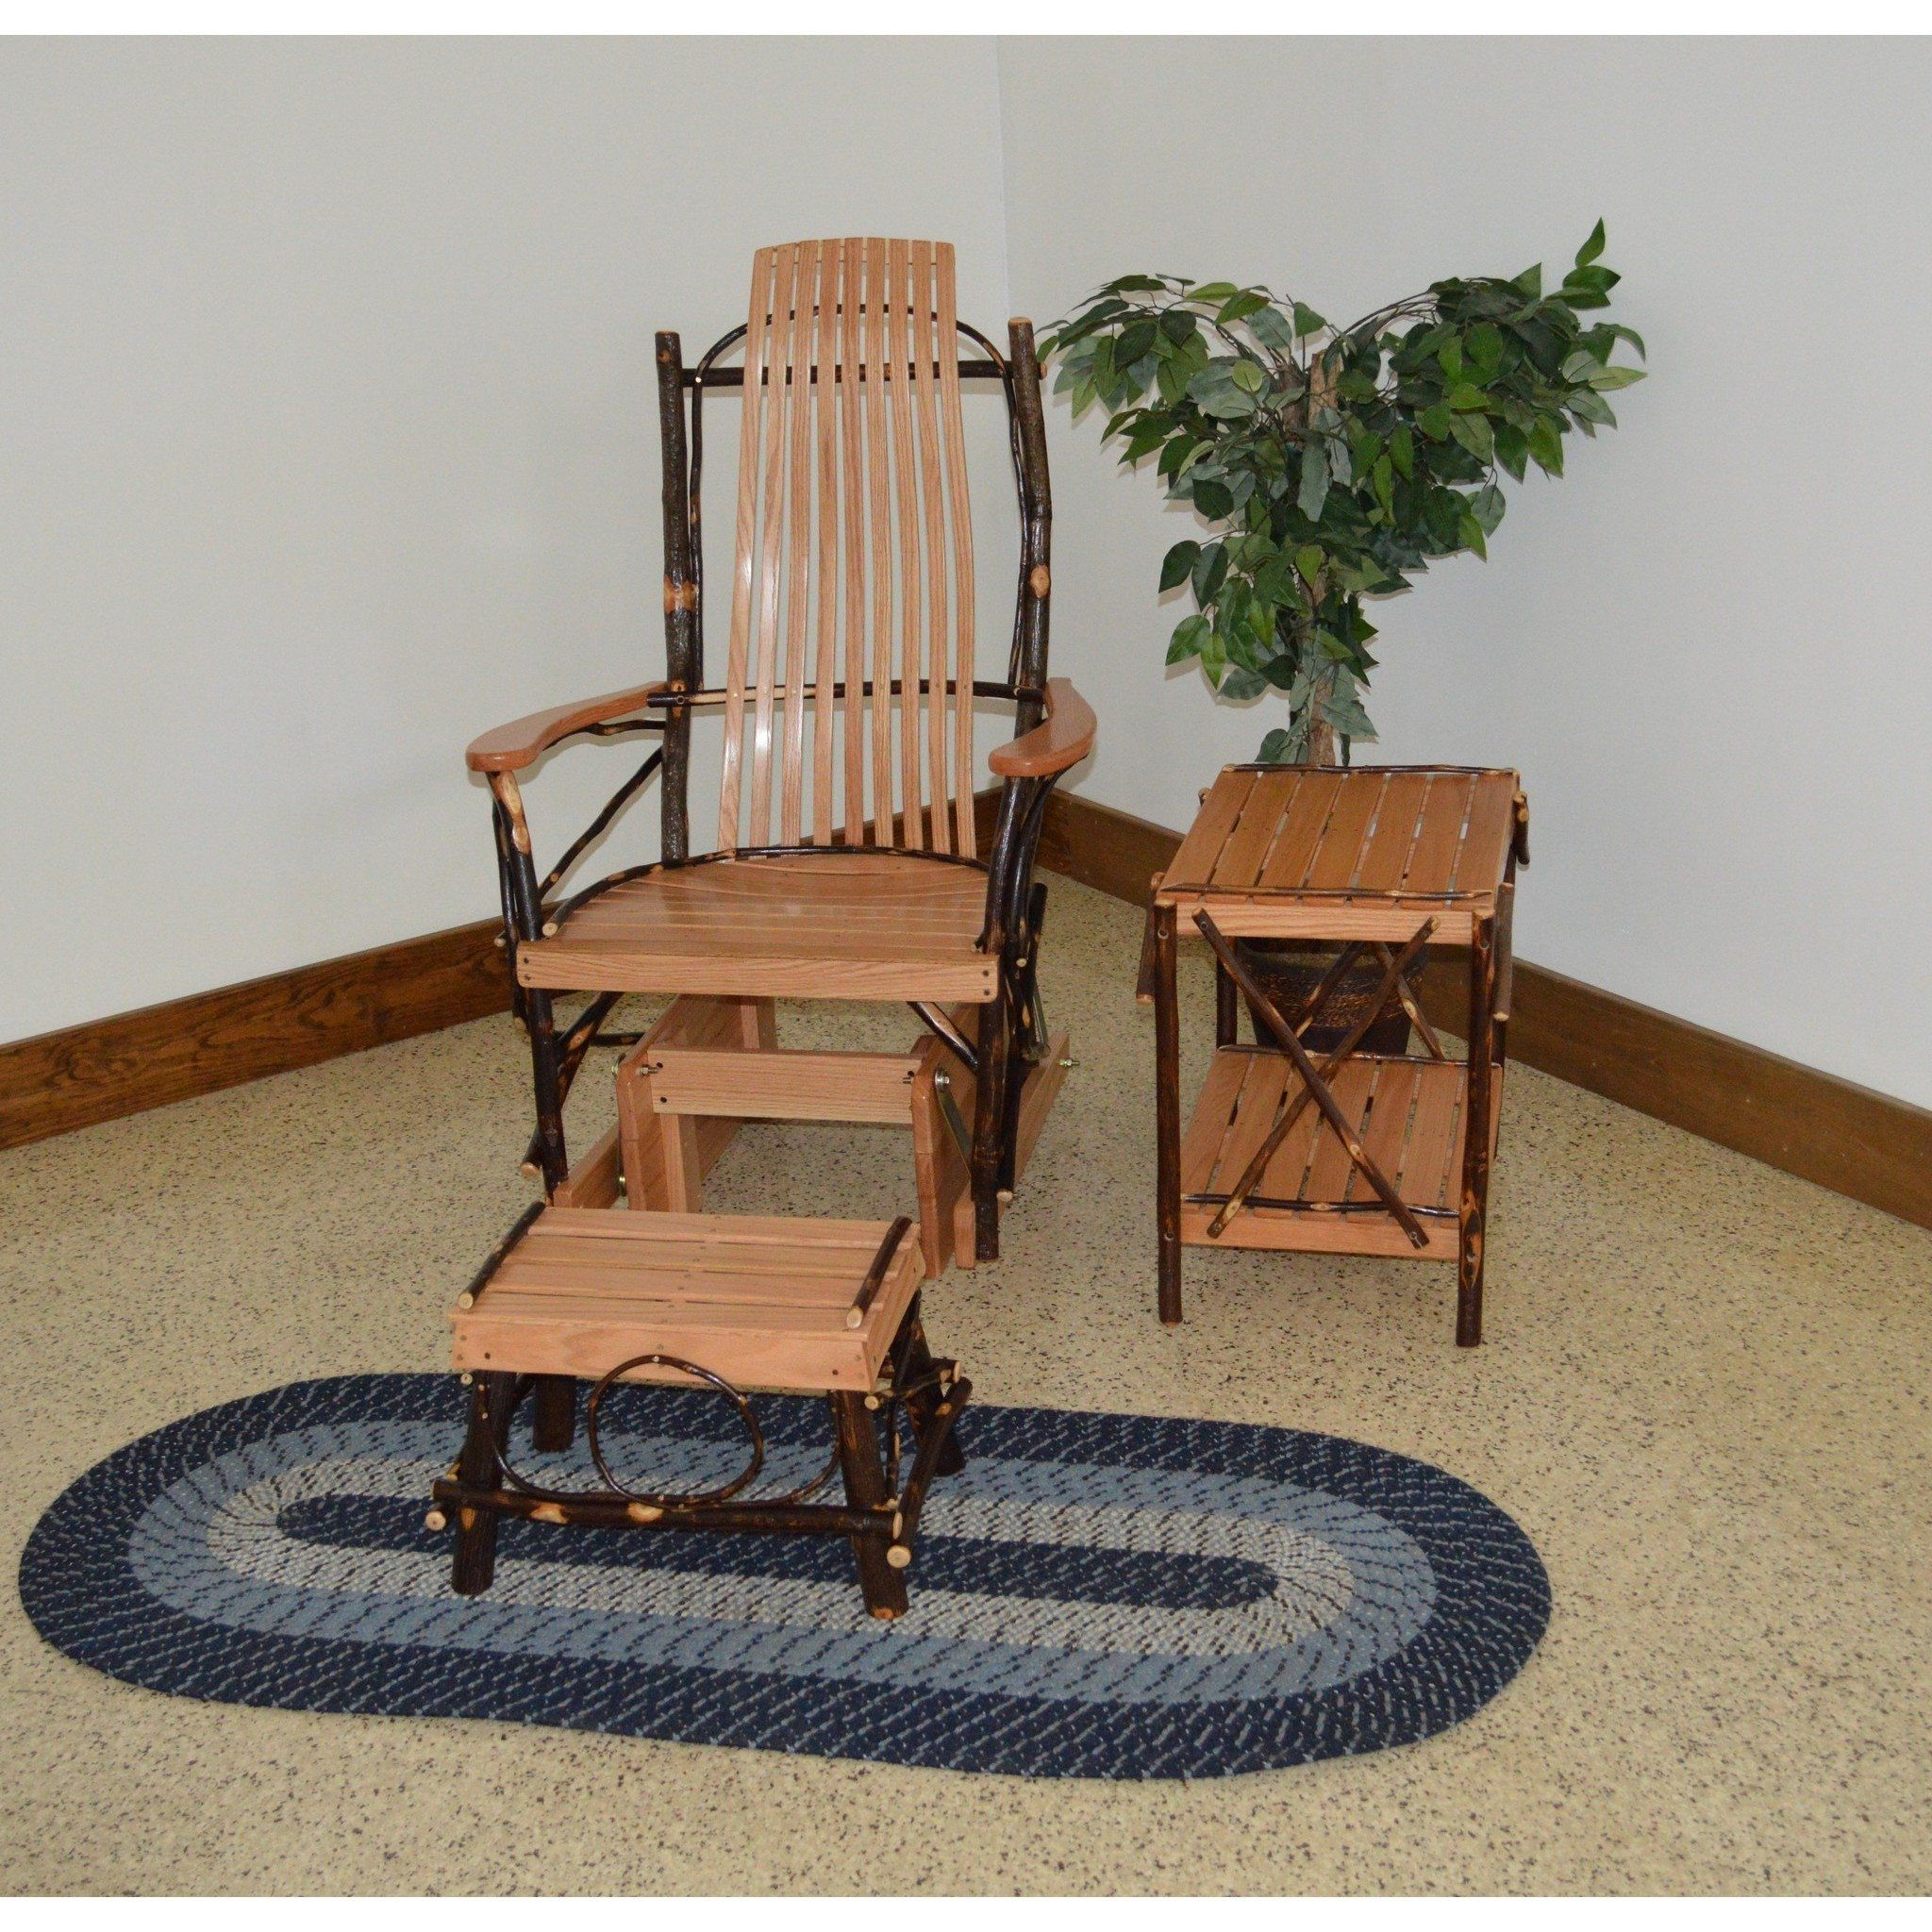 A & L Furniture Co. Amish Bentwood Hickory Glider Rocker